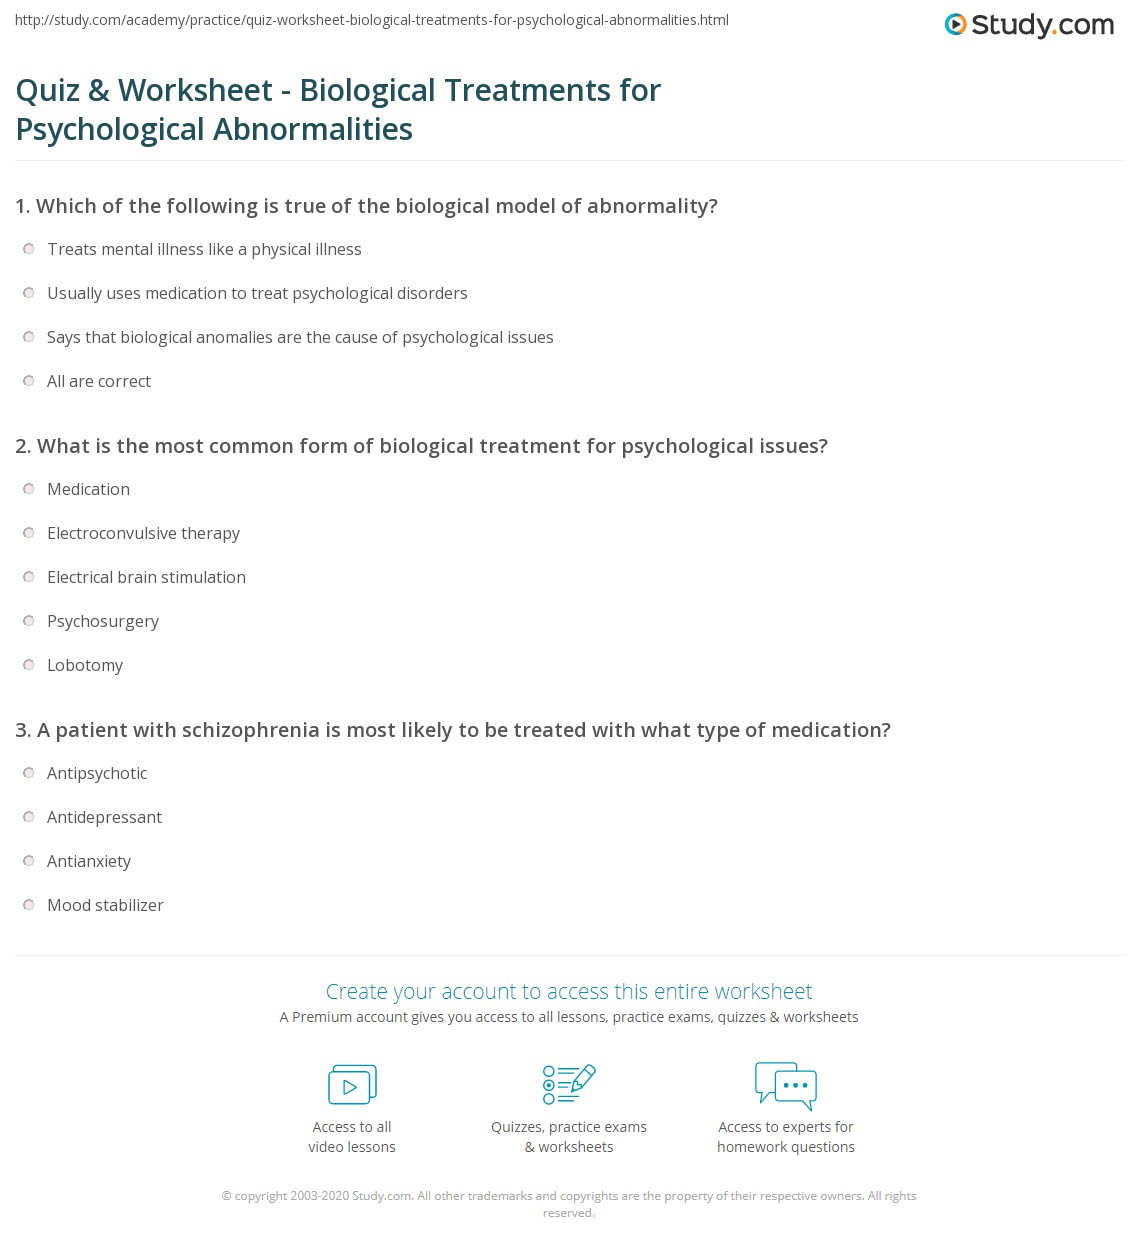 Quiz Worksheet Biological Treatments For Psychological Abnormalities Study Com